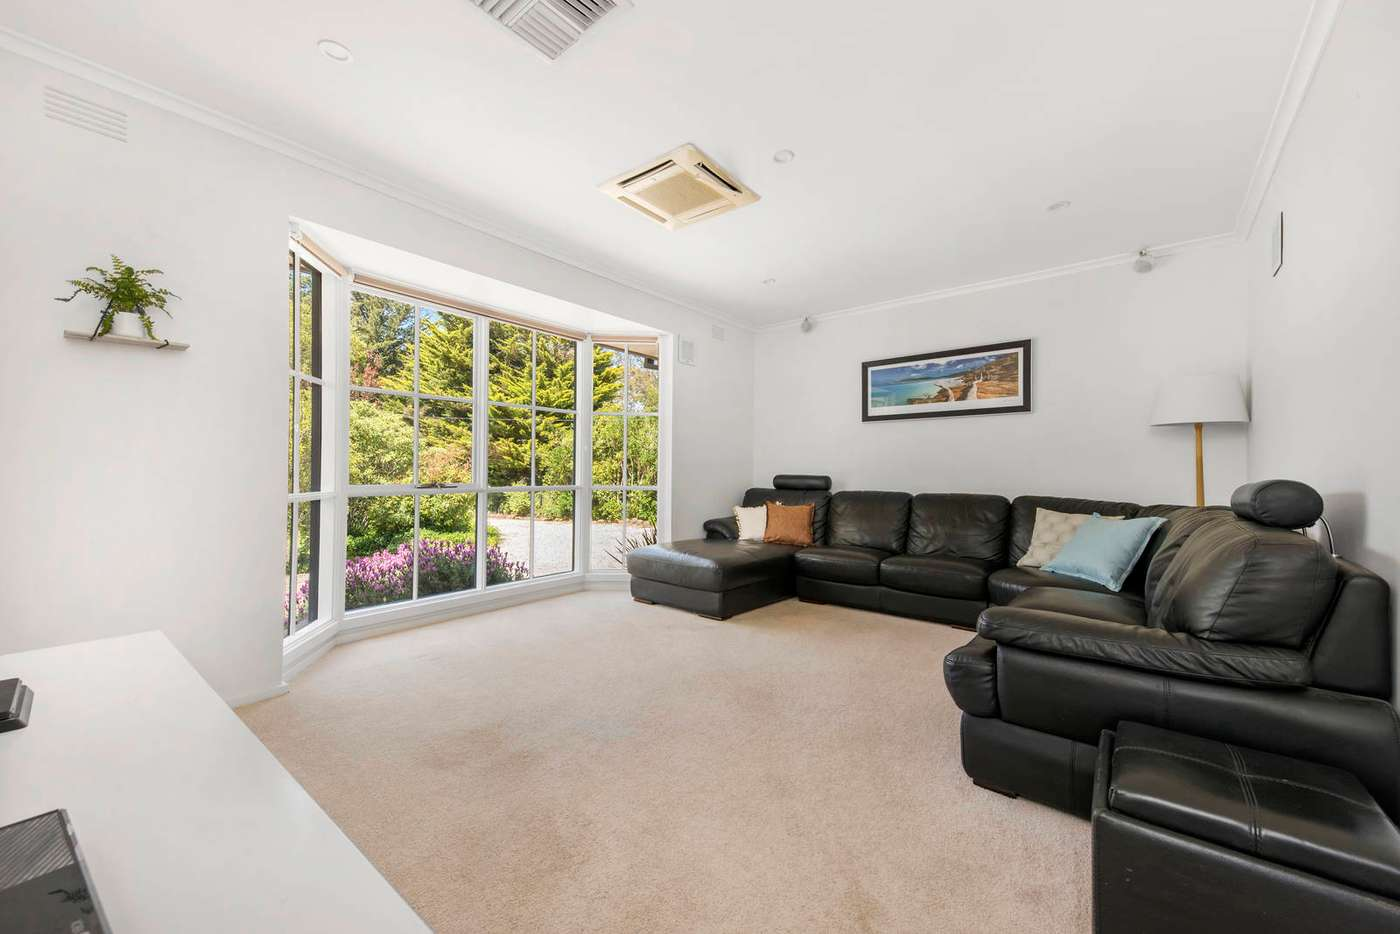 Fifth view of Homely house listing, 52 Marshall Avenue, Macedon VIC 3440